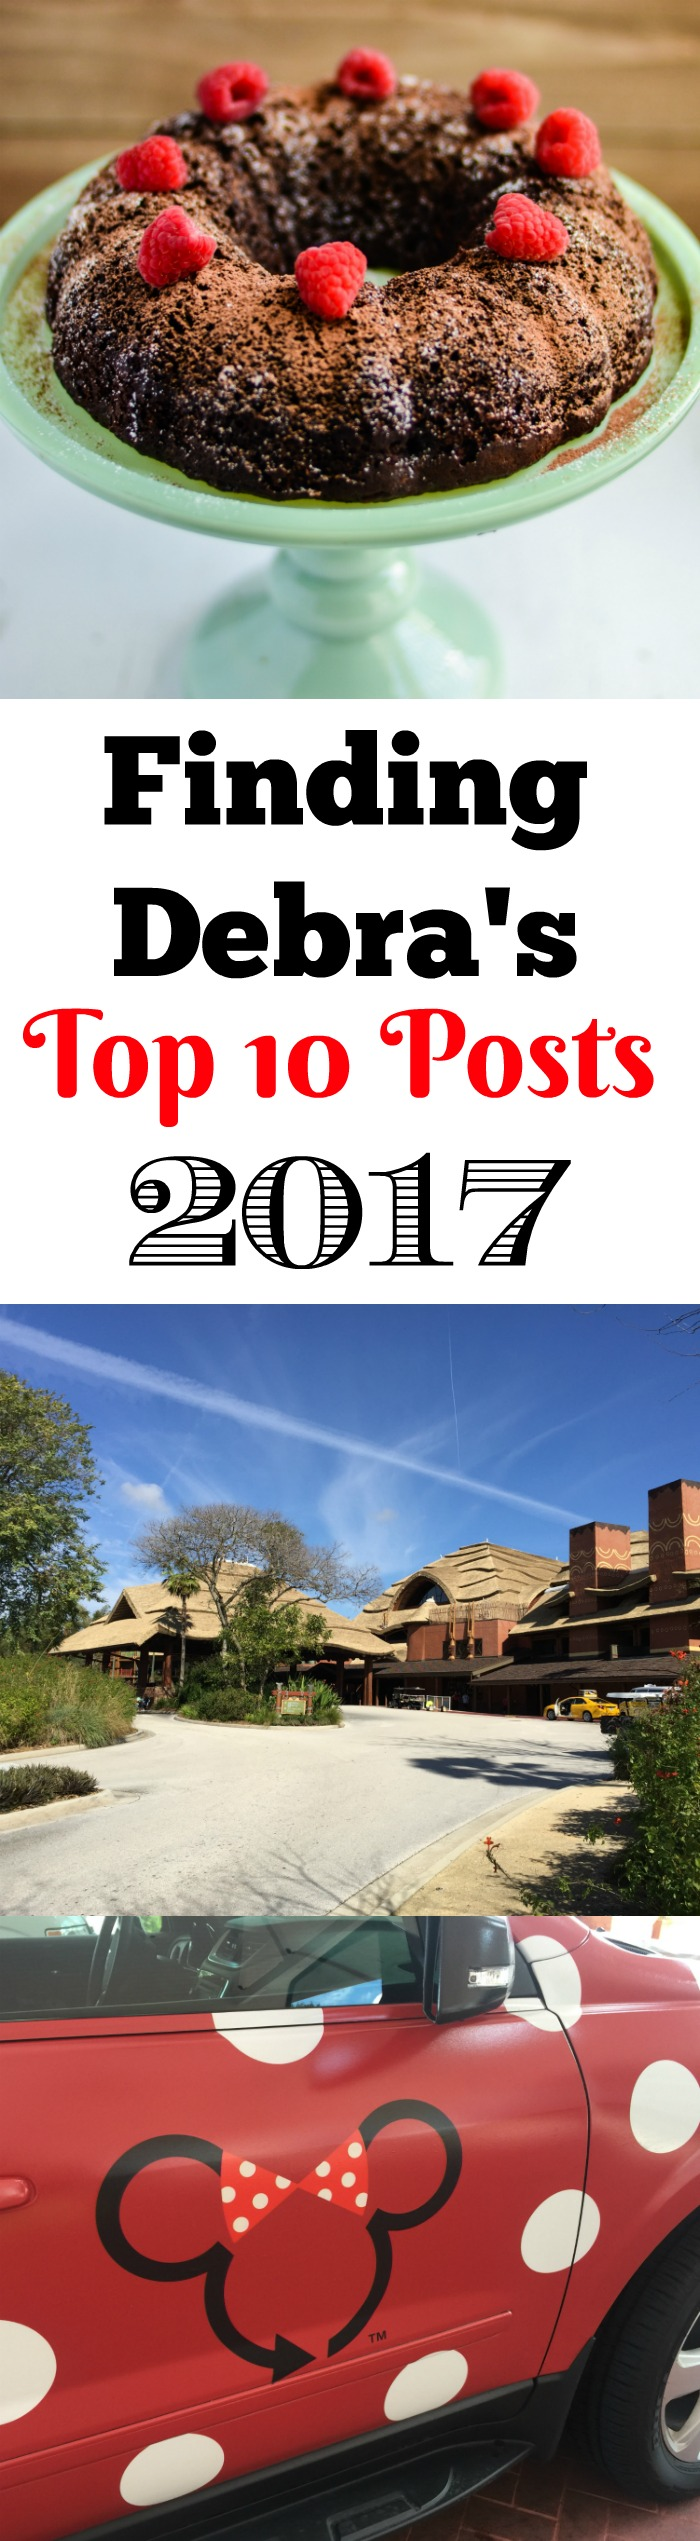 Finding Debra's Top 10 Posts 2017 pin